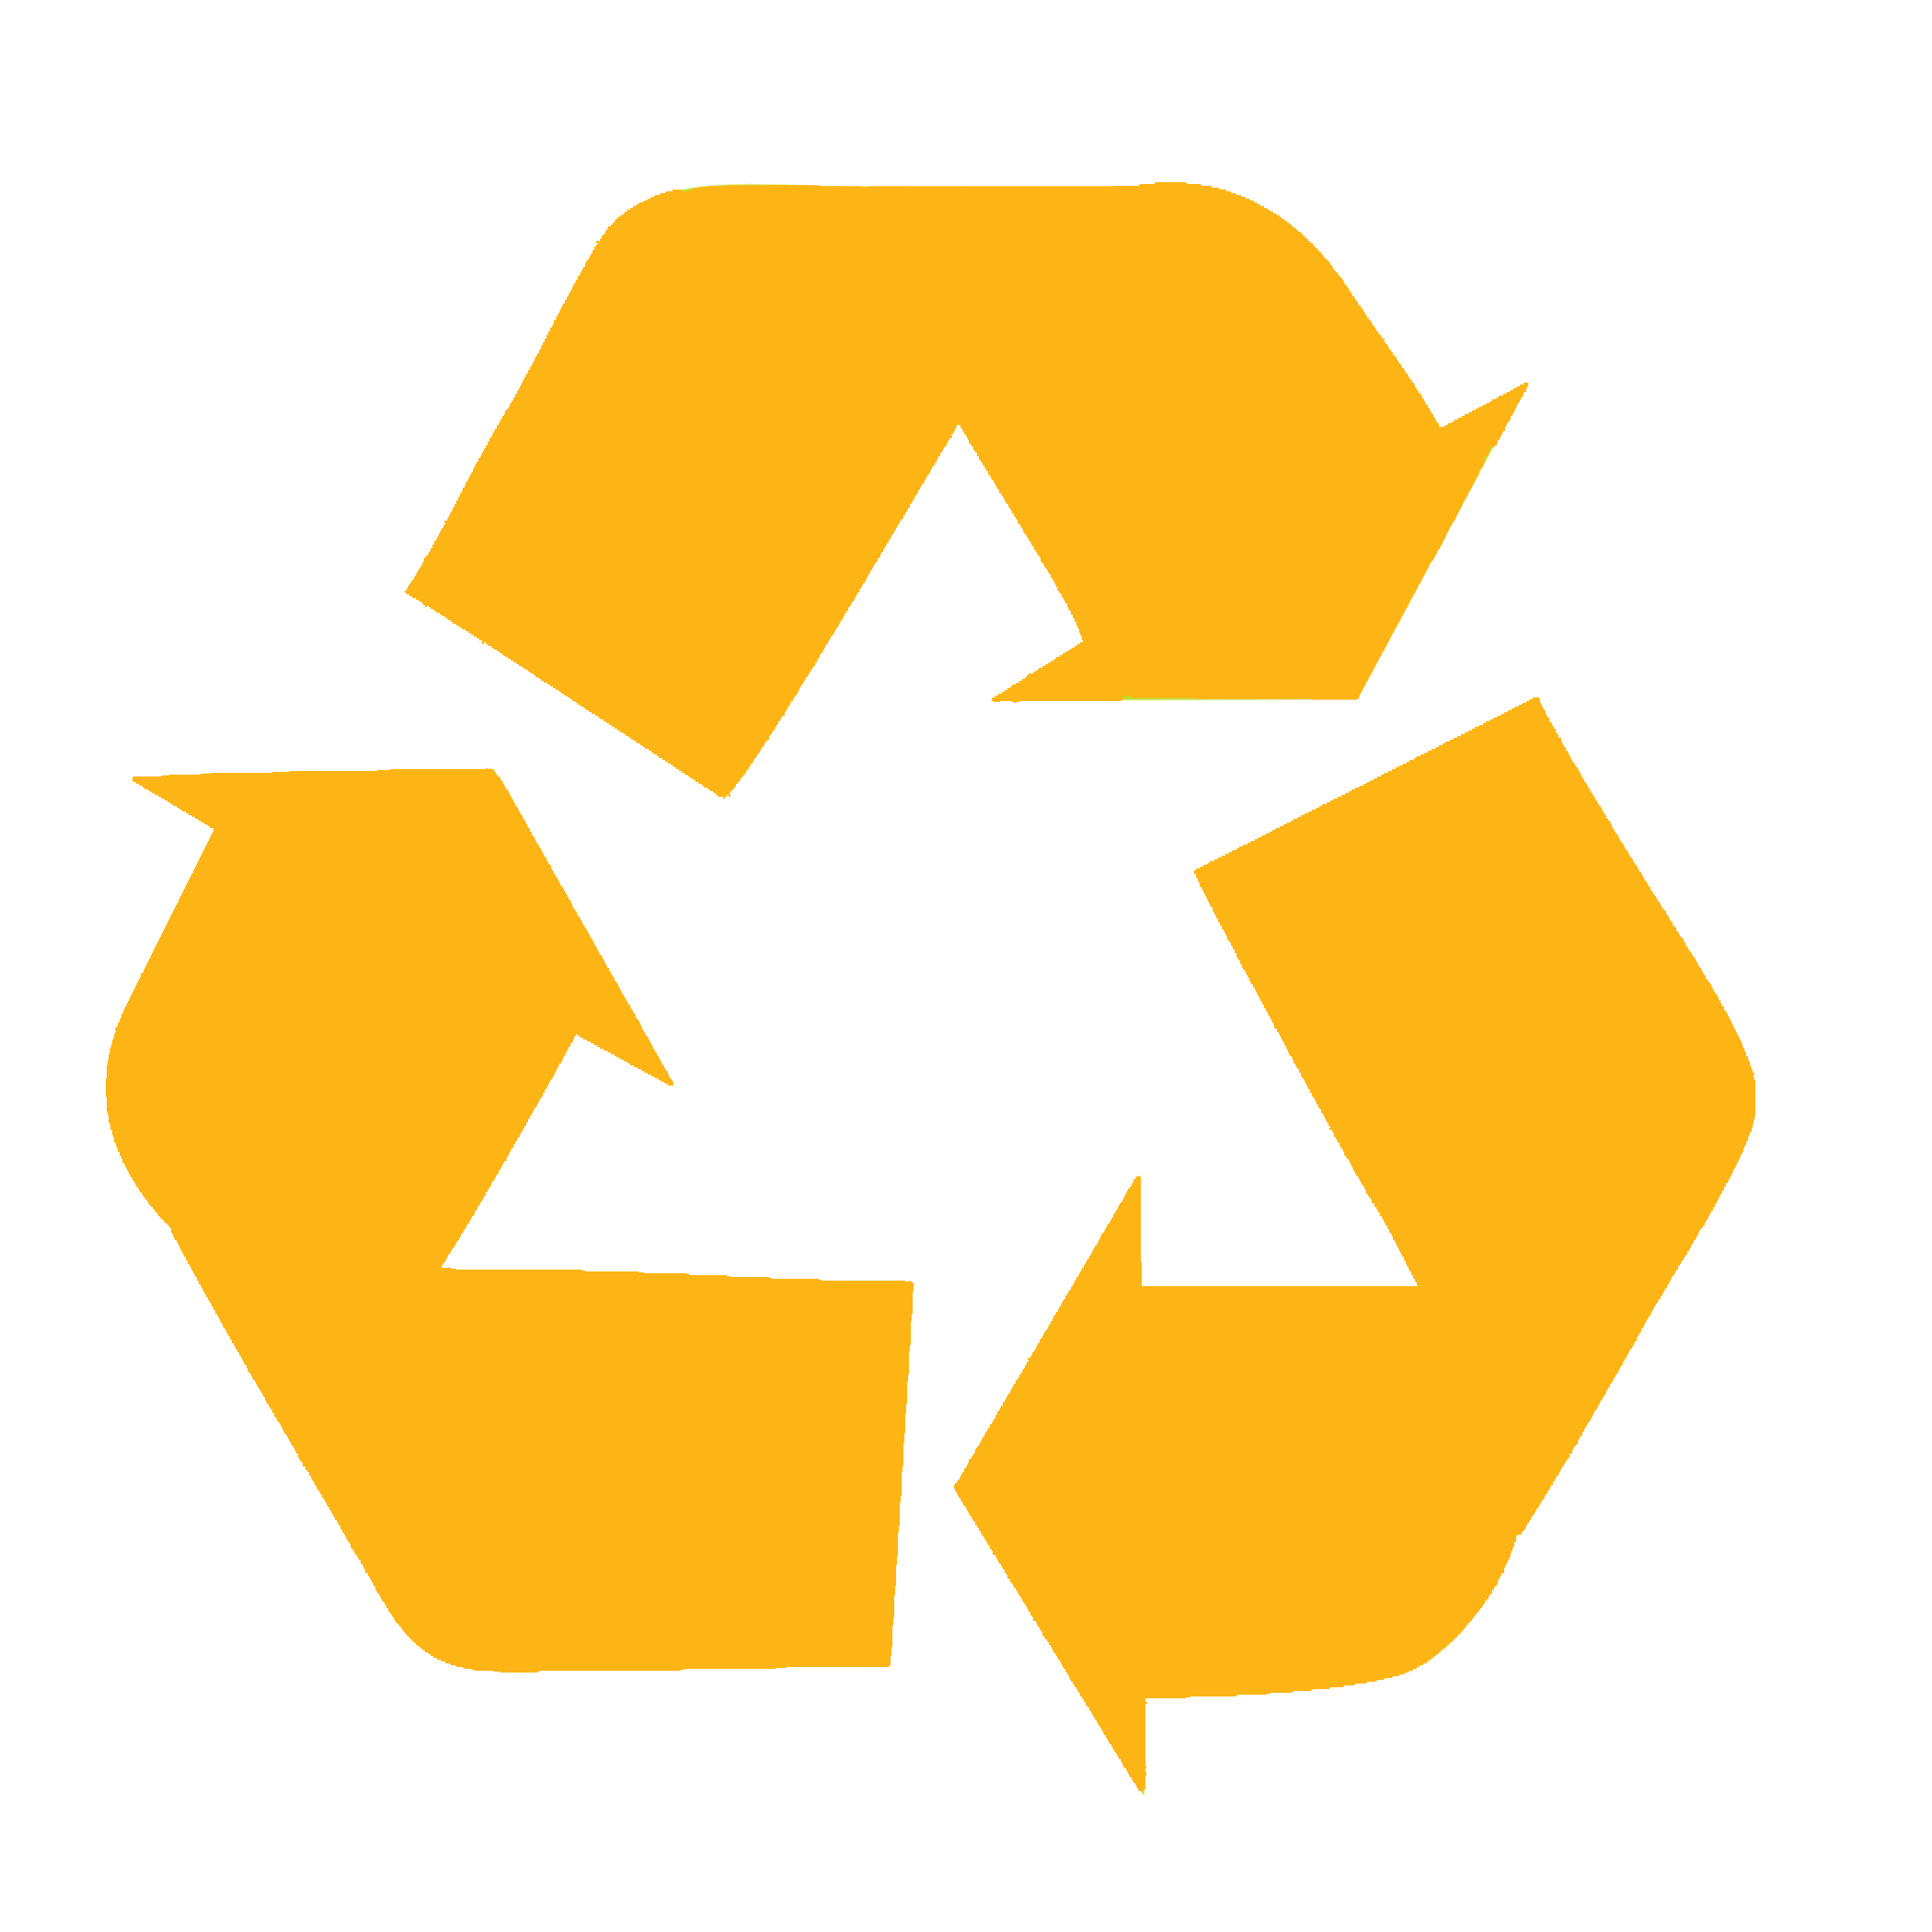 Paper Recycling Reusing Material Reducing Our Impact